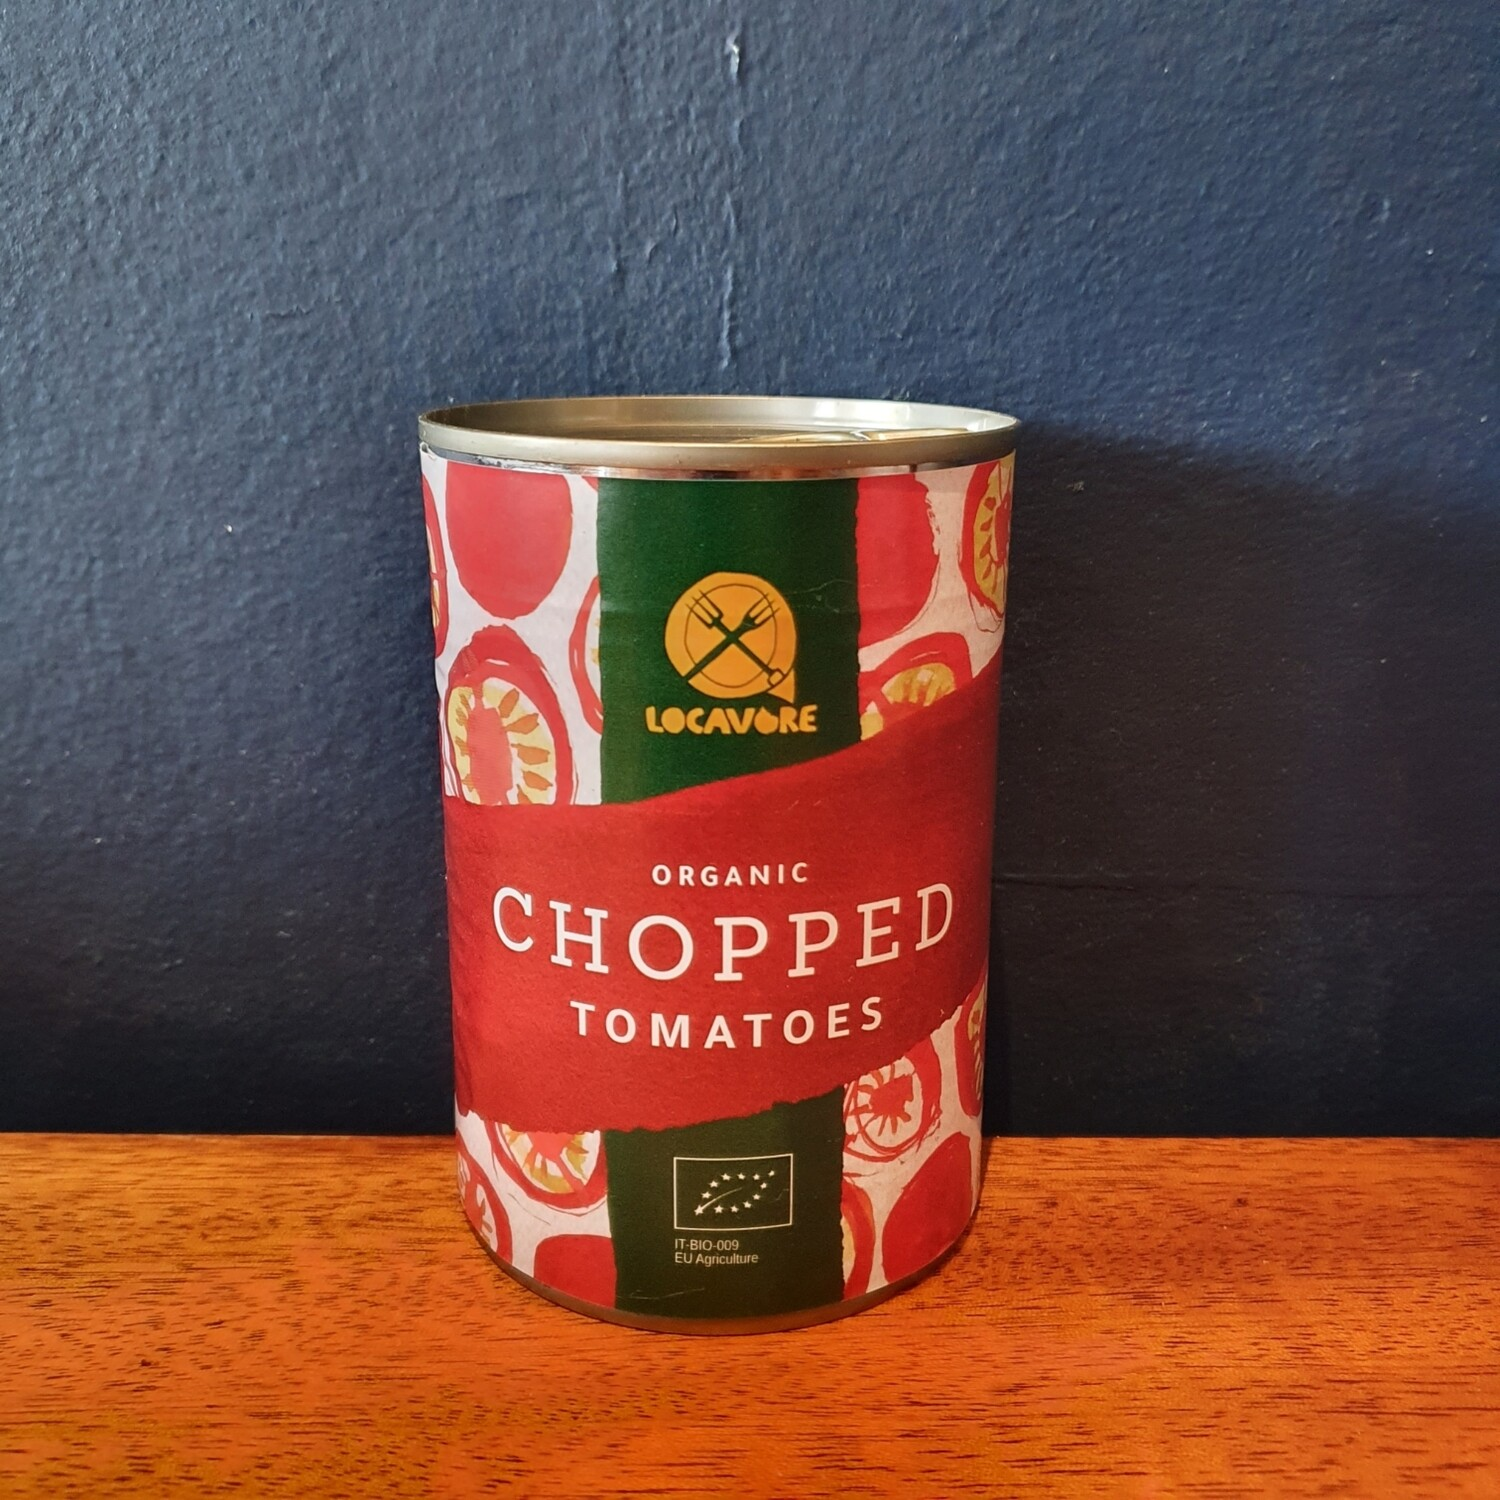 Locavore - Chopped Tomatoes 400g